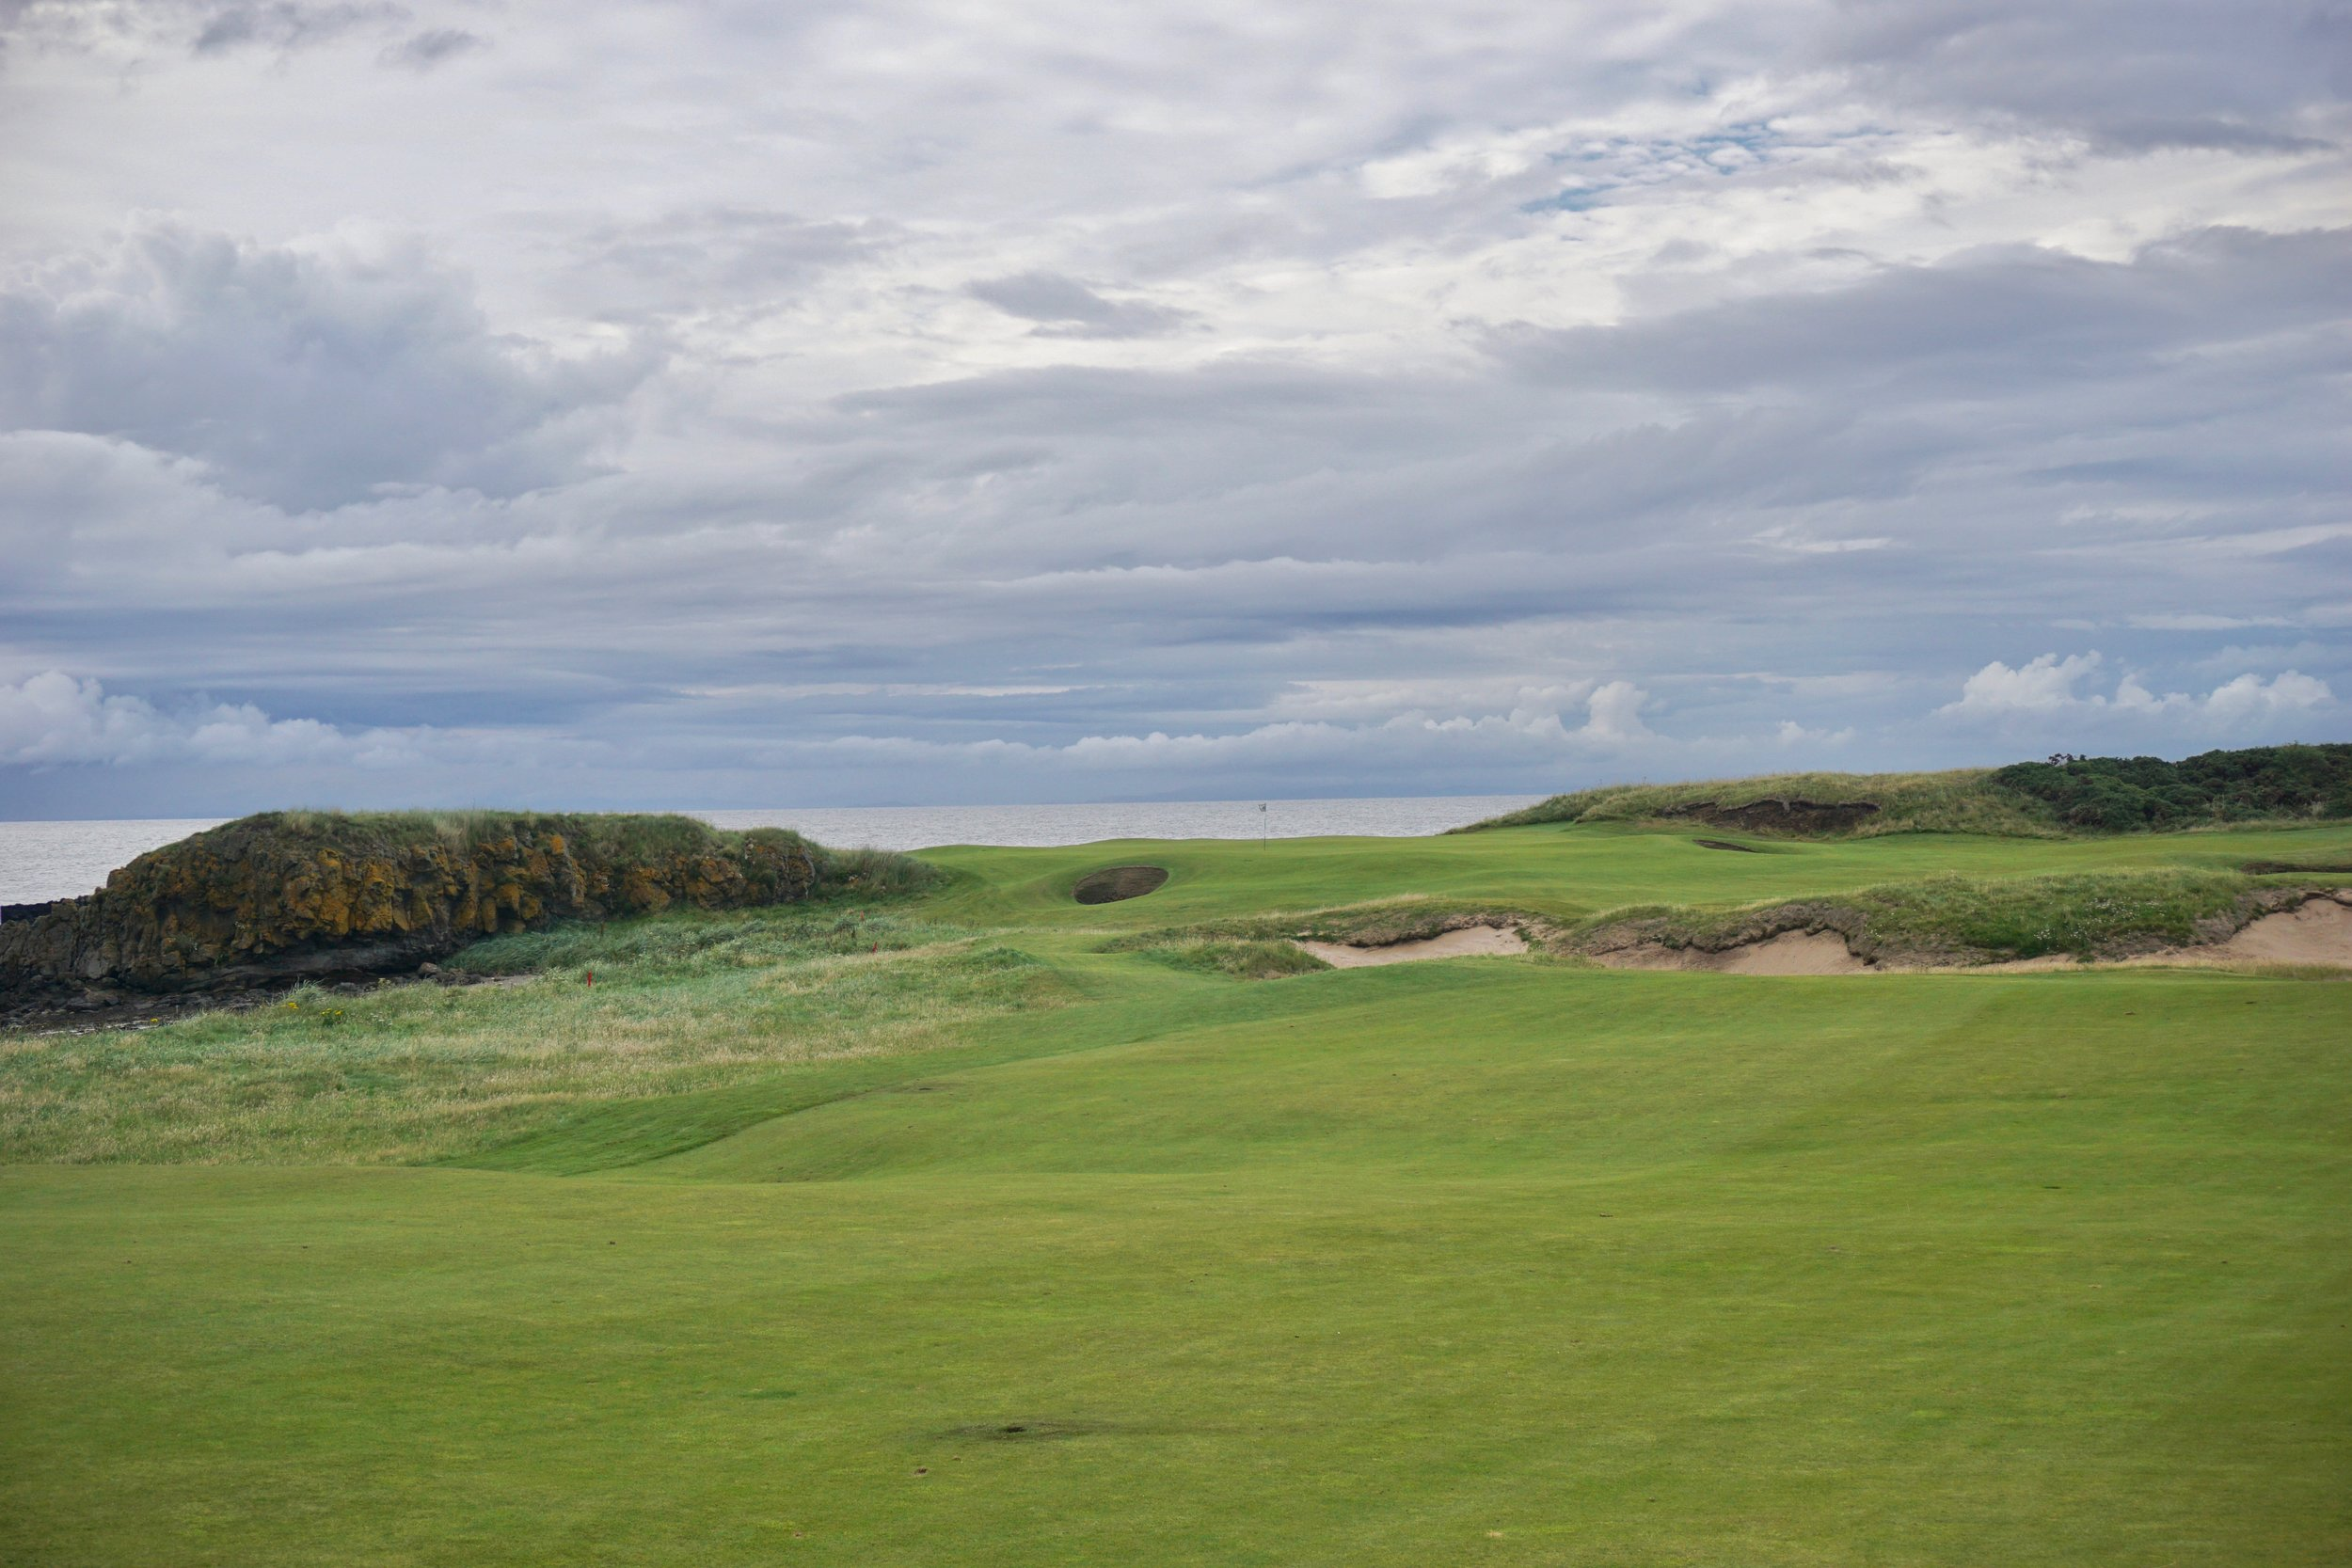 Turnberry was often criticized for the course not matching the dramatic setting, but after the renovation work by Mackenzie and Ebert, the 10th hole is certainly worthy.